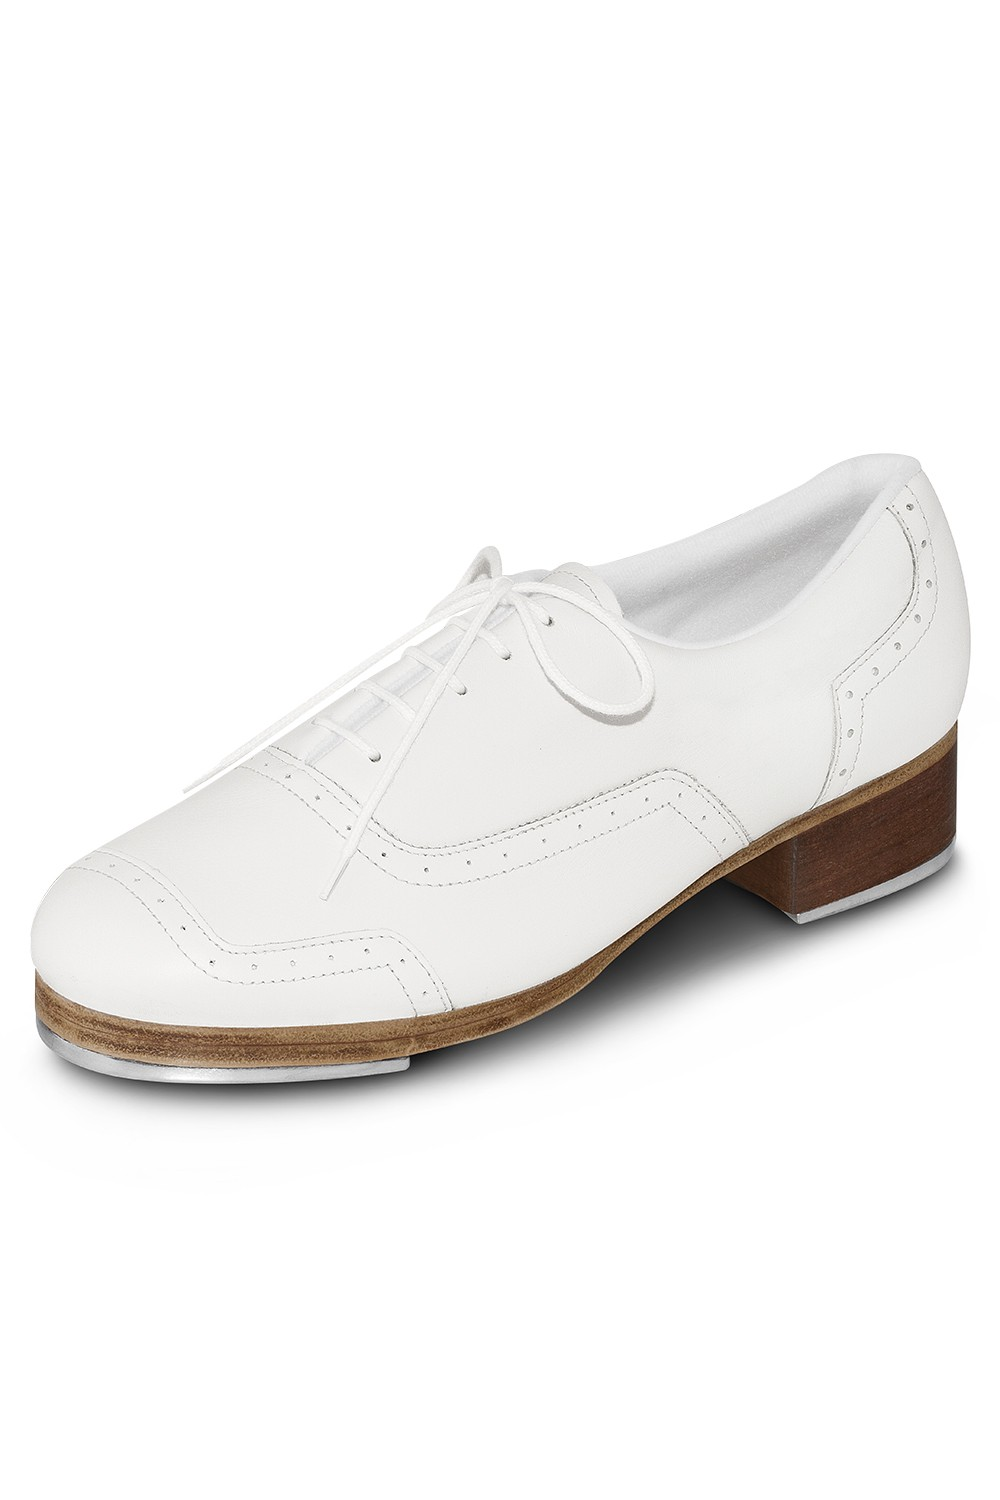 Jason Samuels Smith - Mens Men's Tap Shoes